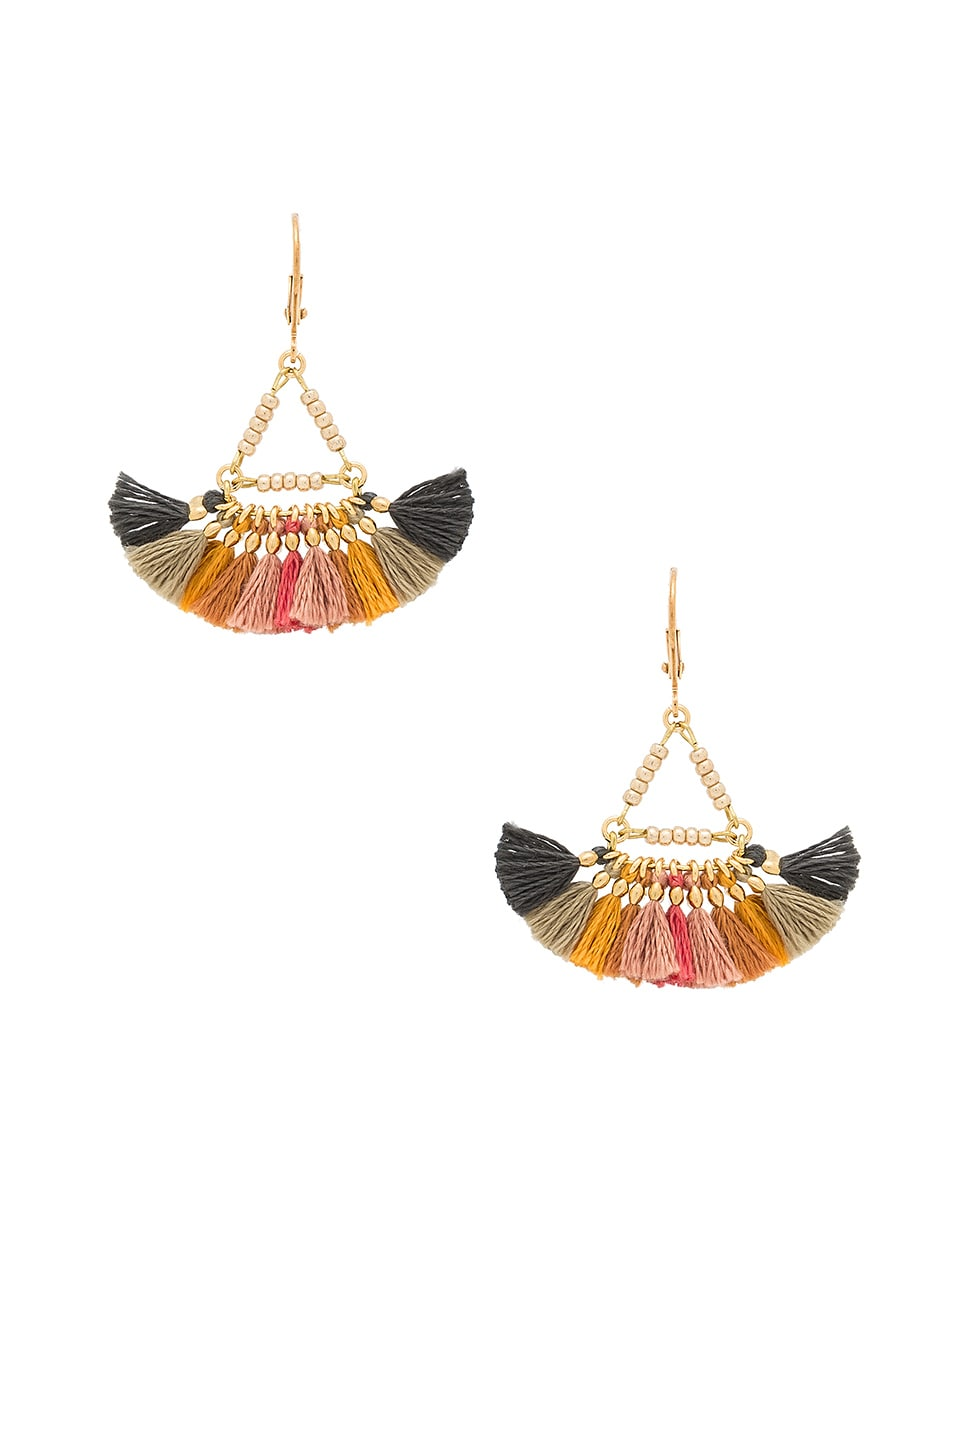 SHASHI Lilu Earrings in Harvest